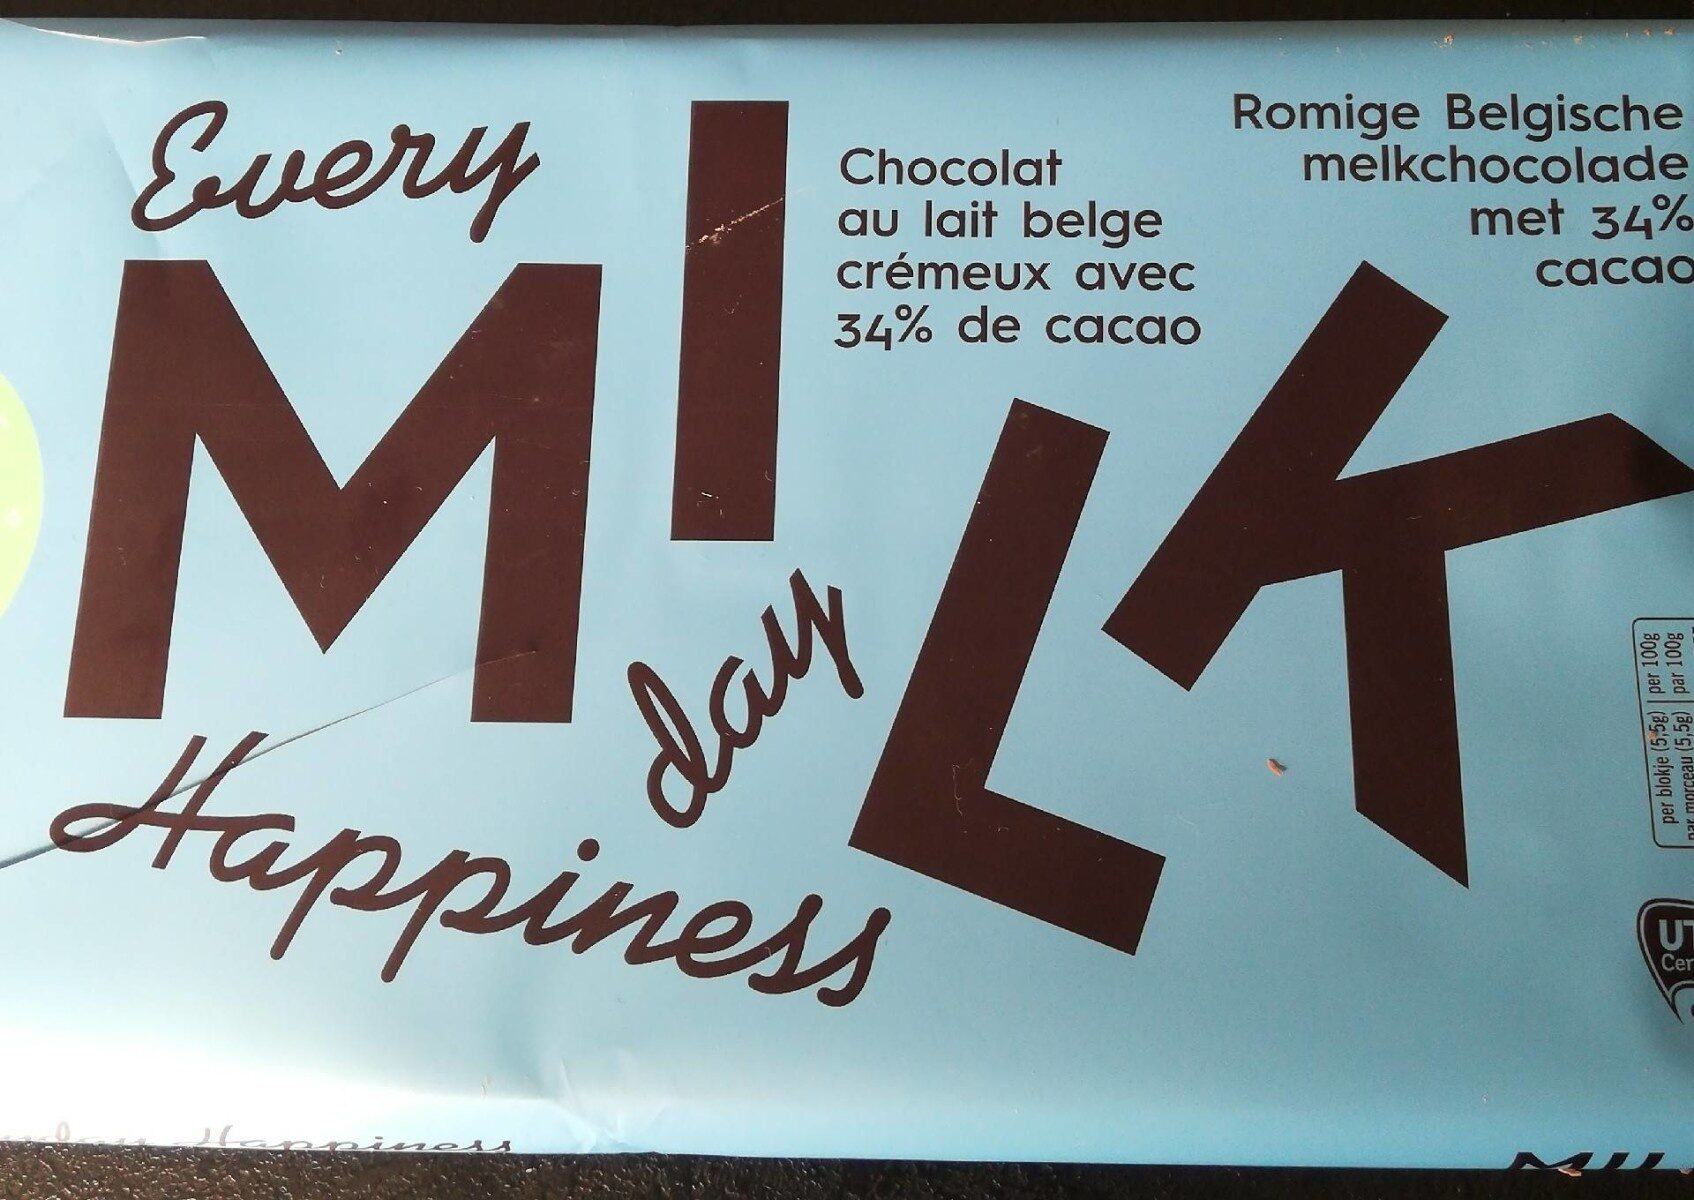 Every Milk happiness - Product